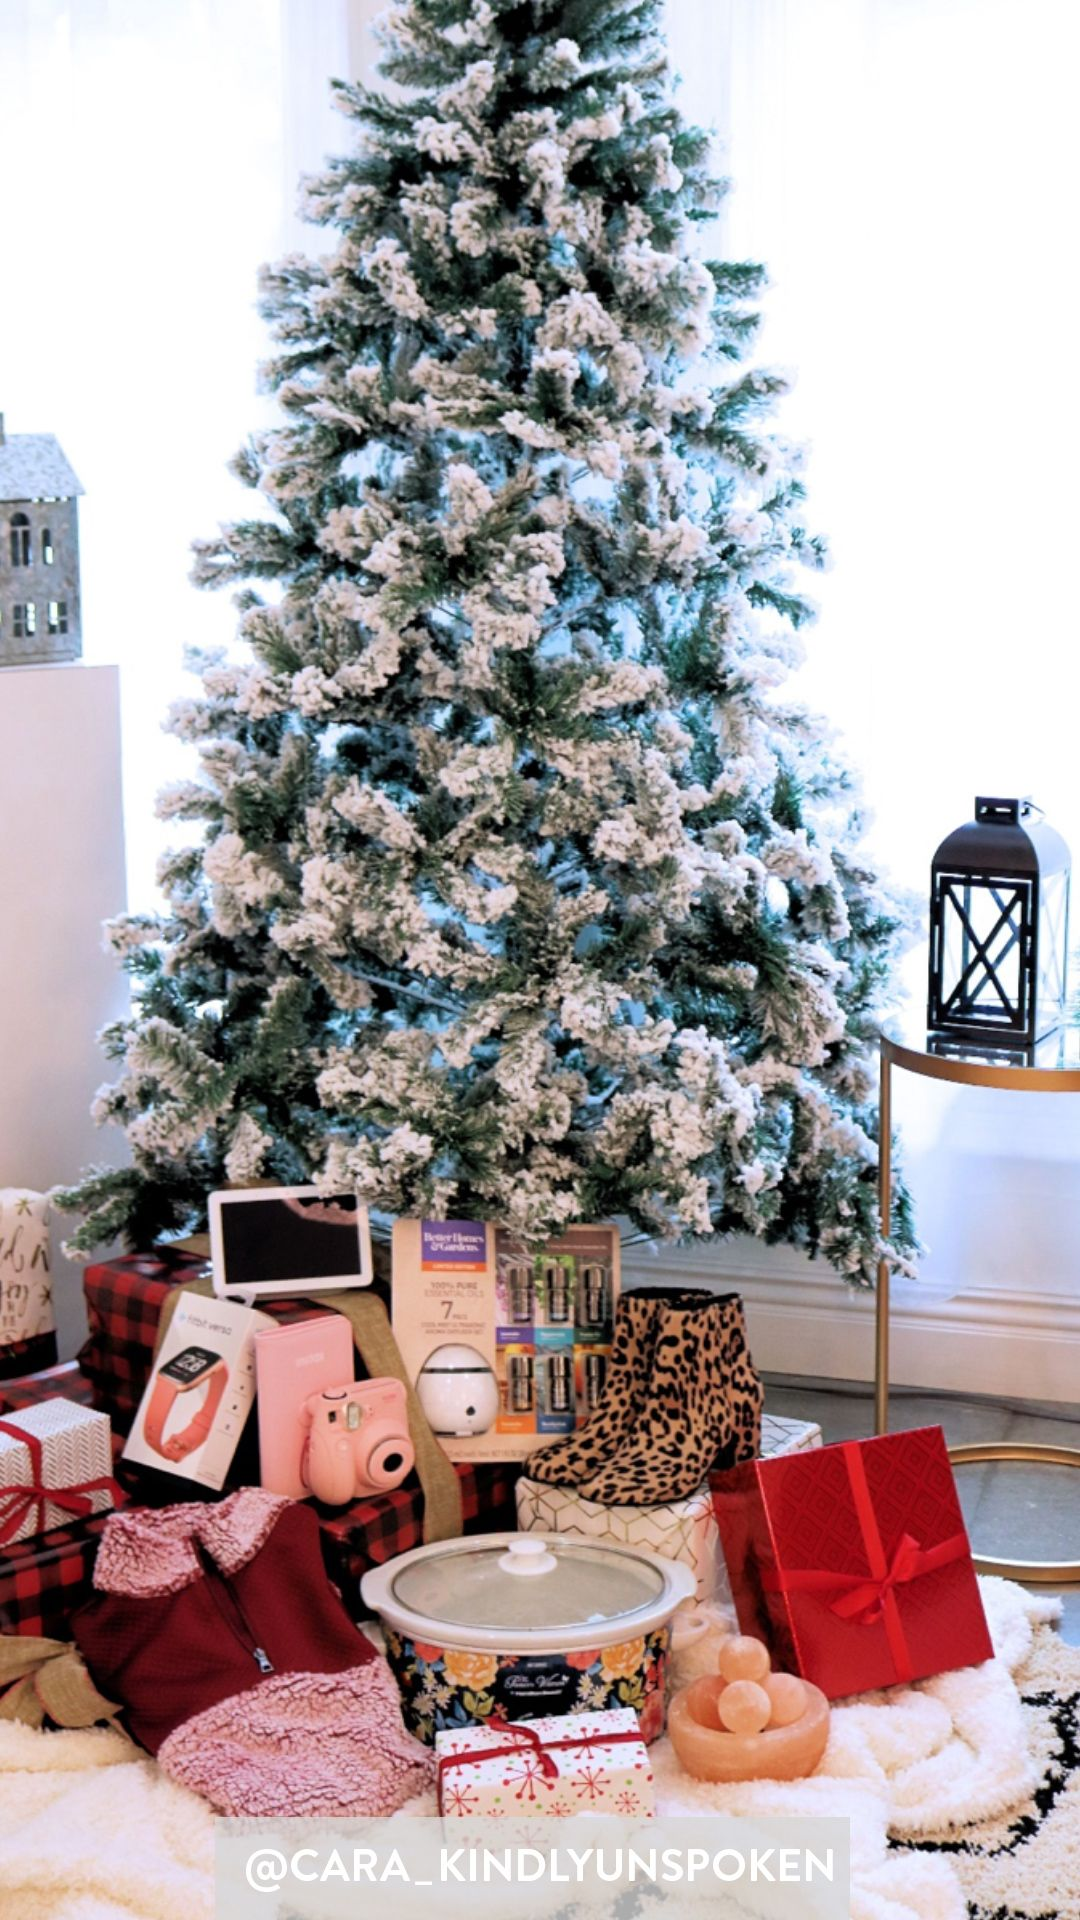 Kindly Unspoken Found Her Favorite Gifts For Her Girl Friends Now It Is Your Turn Take A Peek At Teens Christmas Holiday Decor Corporate Christmas Parties